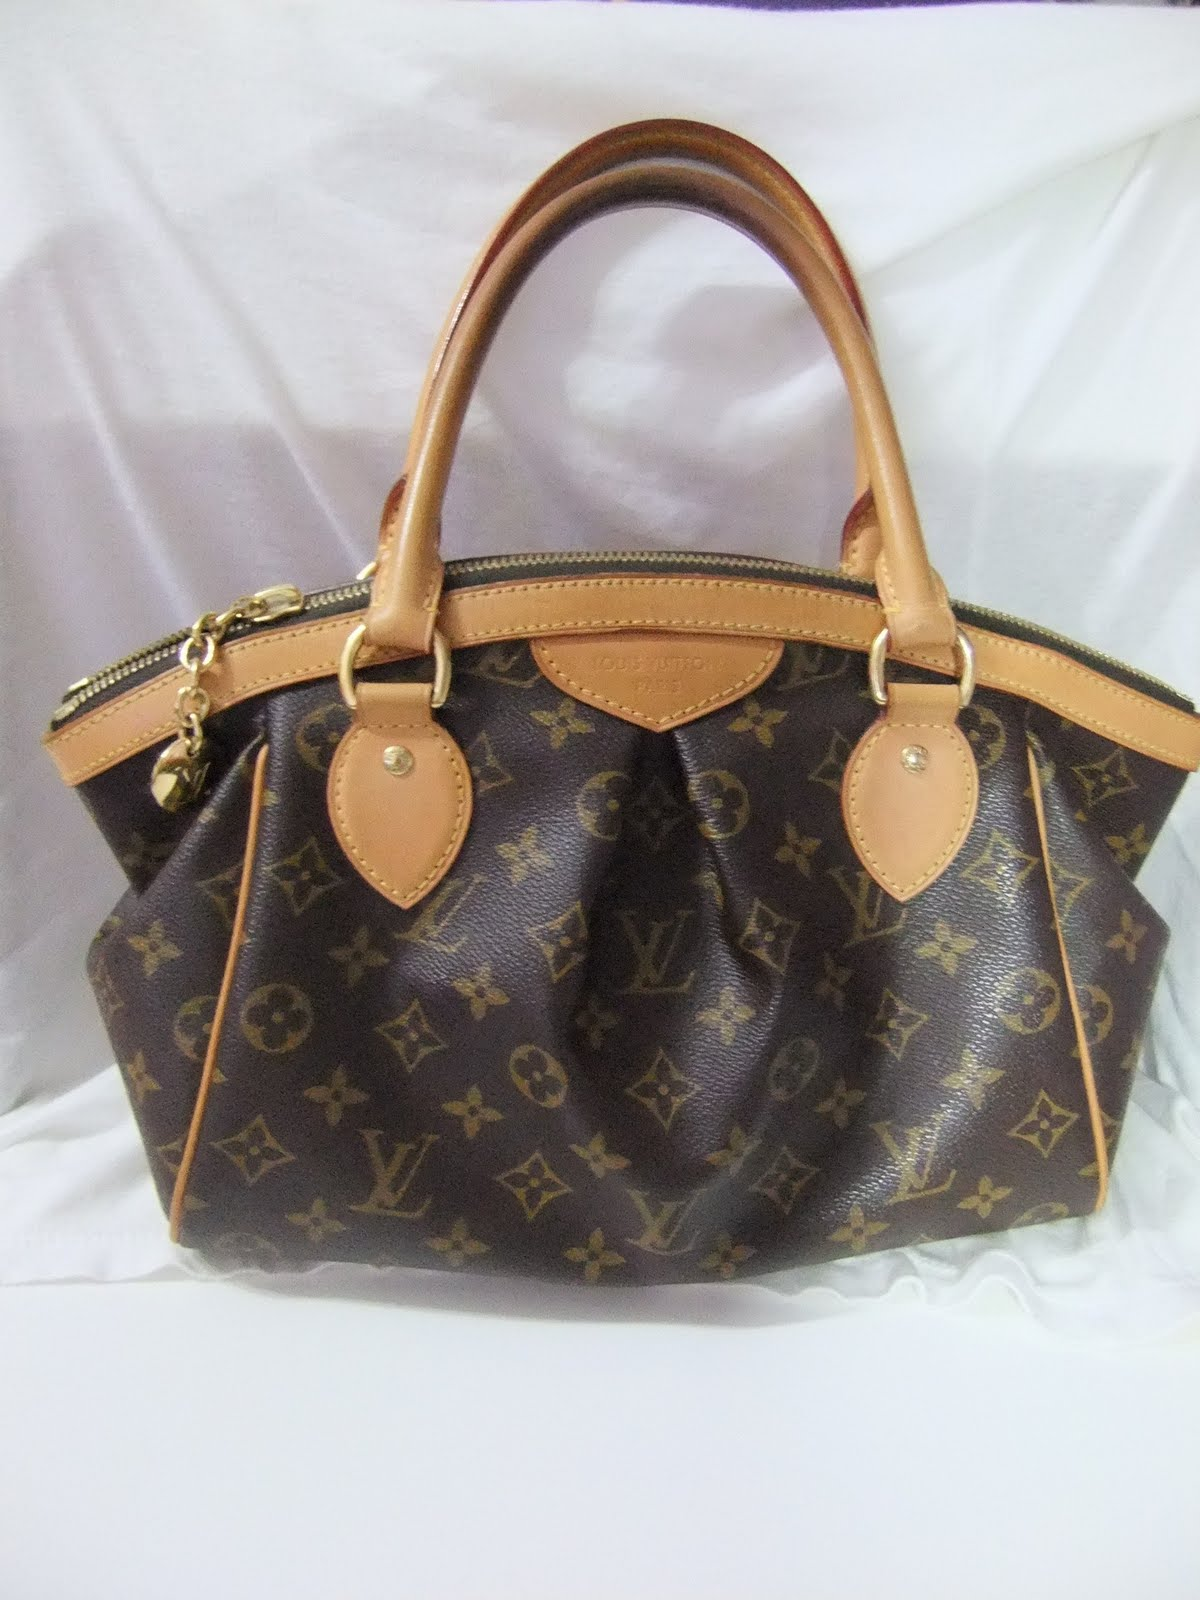 Louis Vuitton Tivoli Pm Brand New This Is My Online Closet Selling Brand New Or Any Pre Owned Items